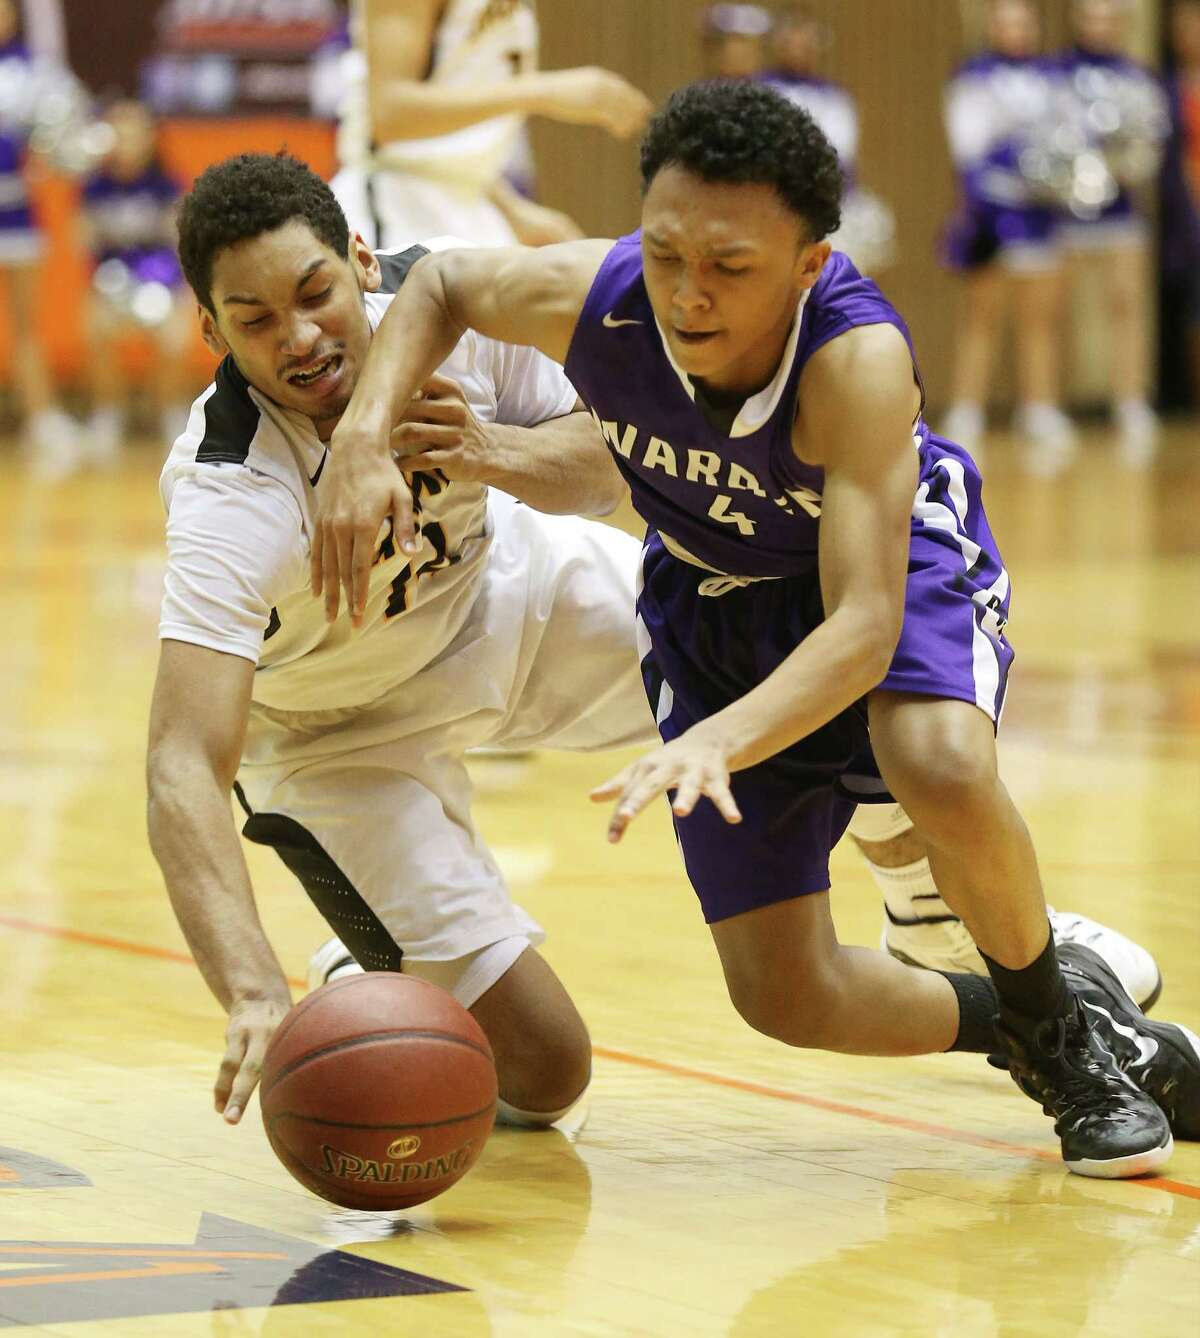 Brennan's Jordan Murphy (14) and Warren's Isaiah Thorne (4) compete for a loose ball in Region IV quarterfinals at UTSA on March 3, 2015.